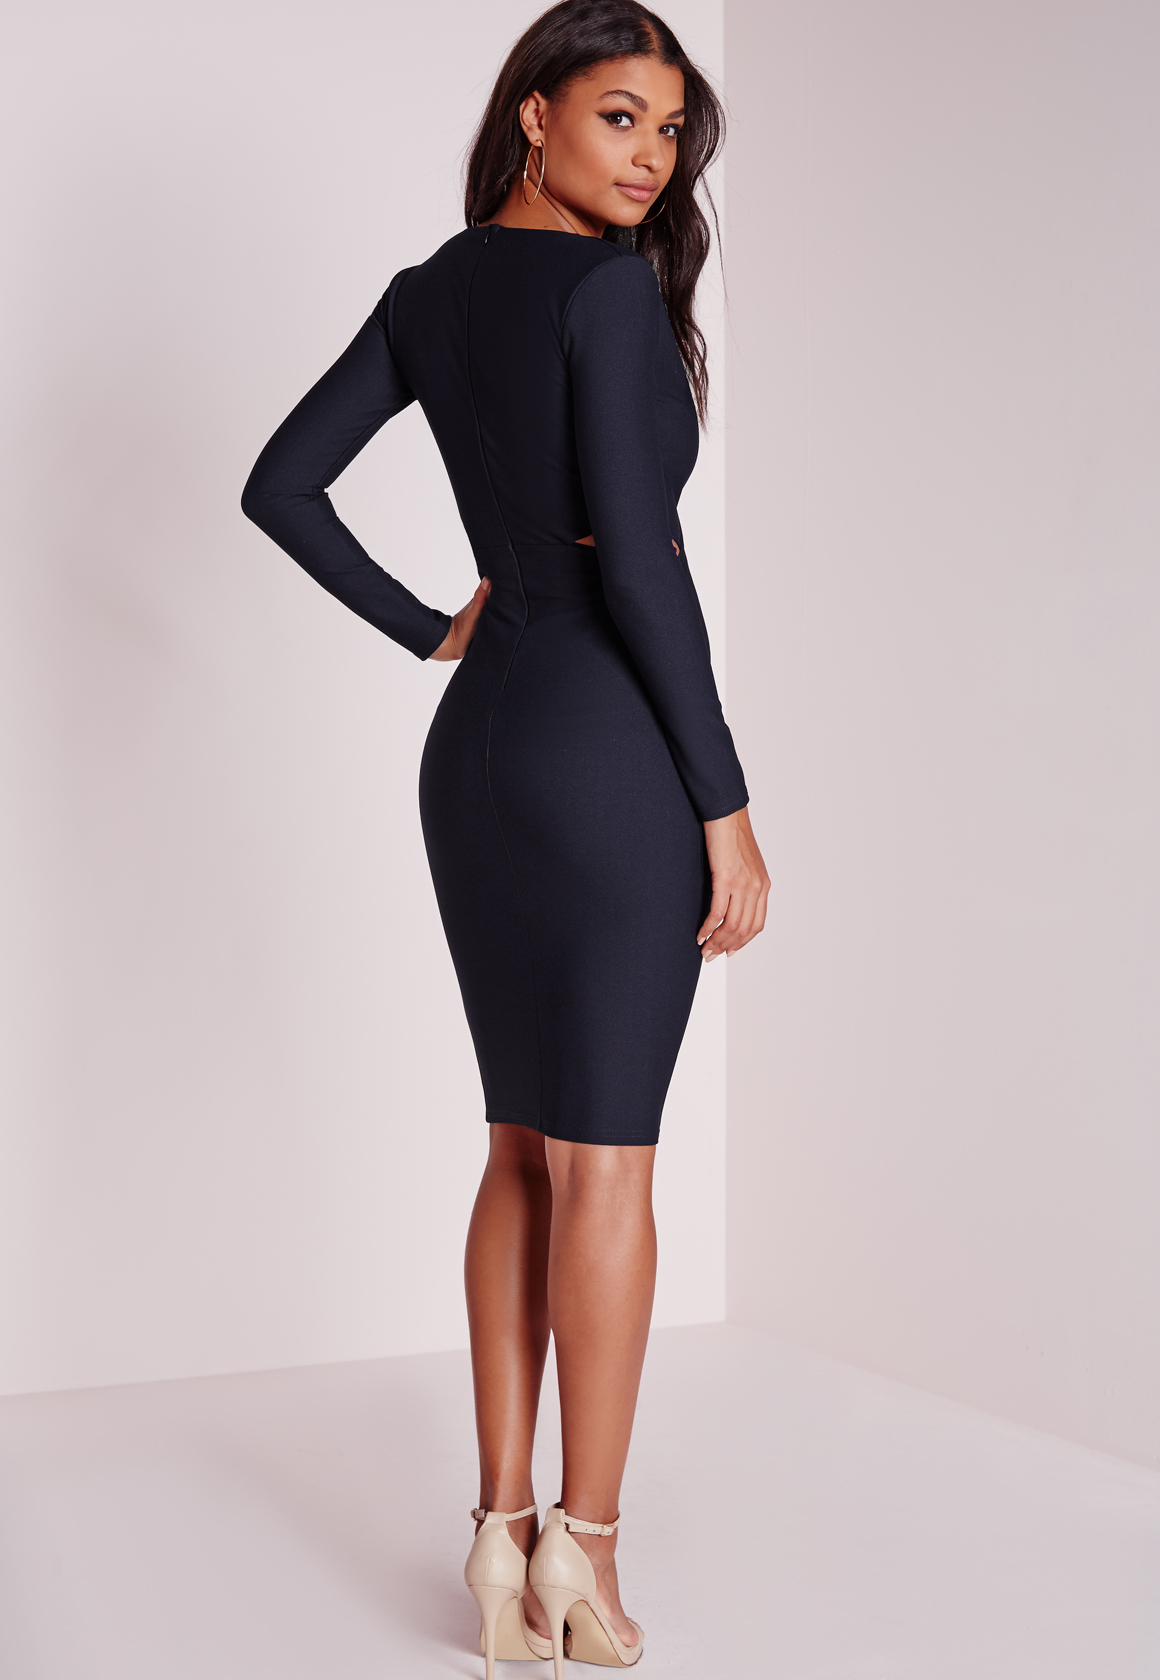 f20400daa6 Lyst - Missguided Cut Out Bodycon Dress Navy in Blue